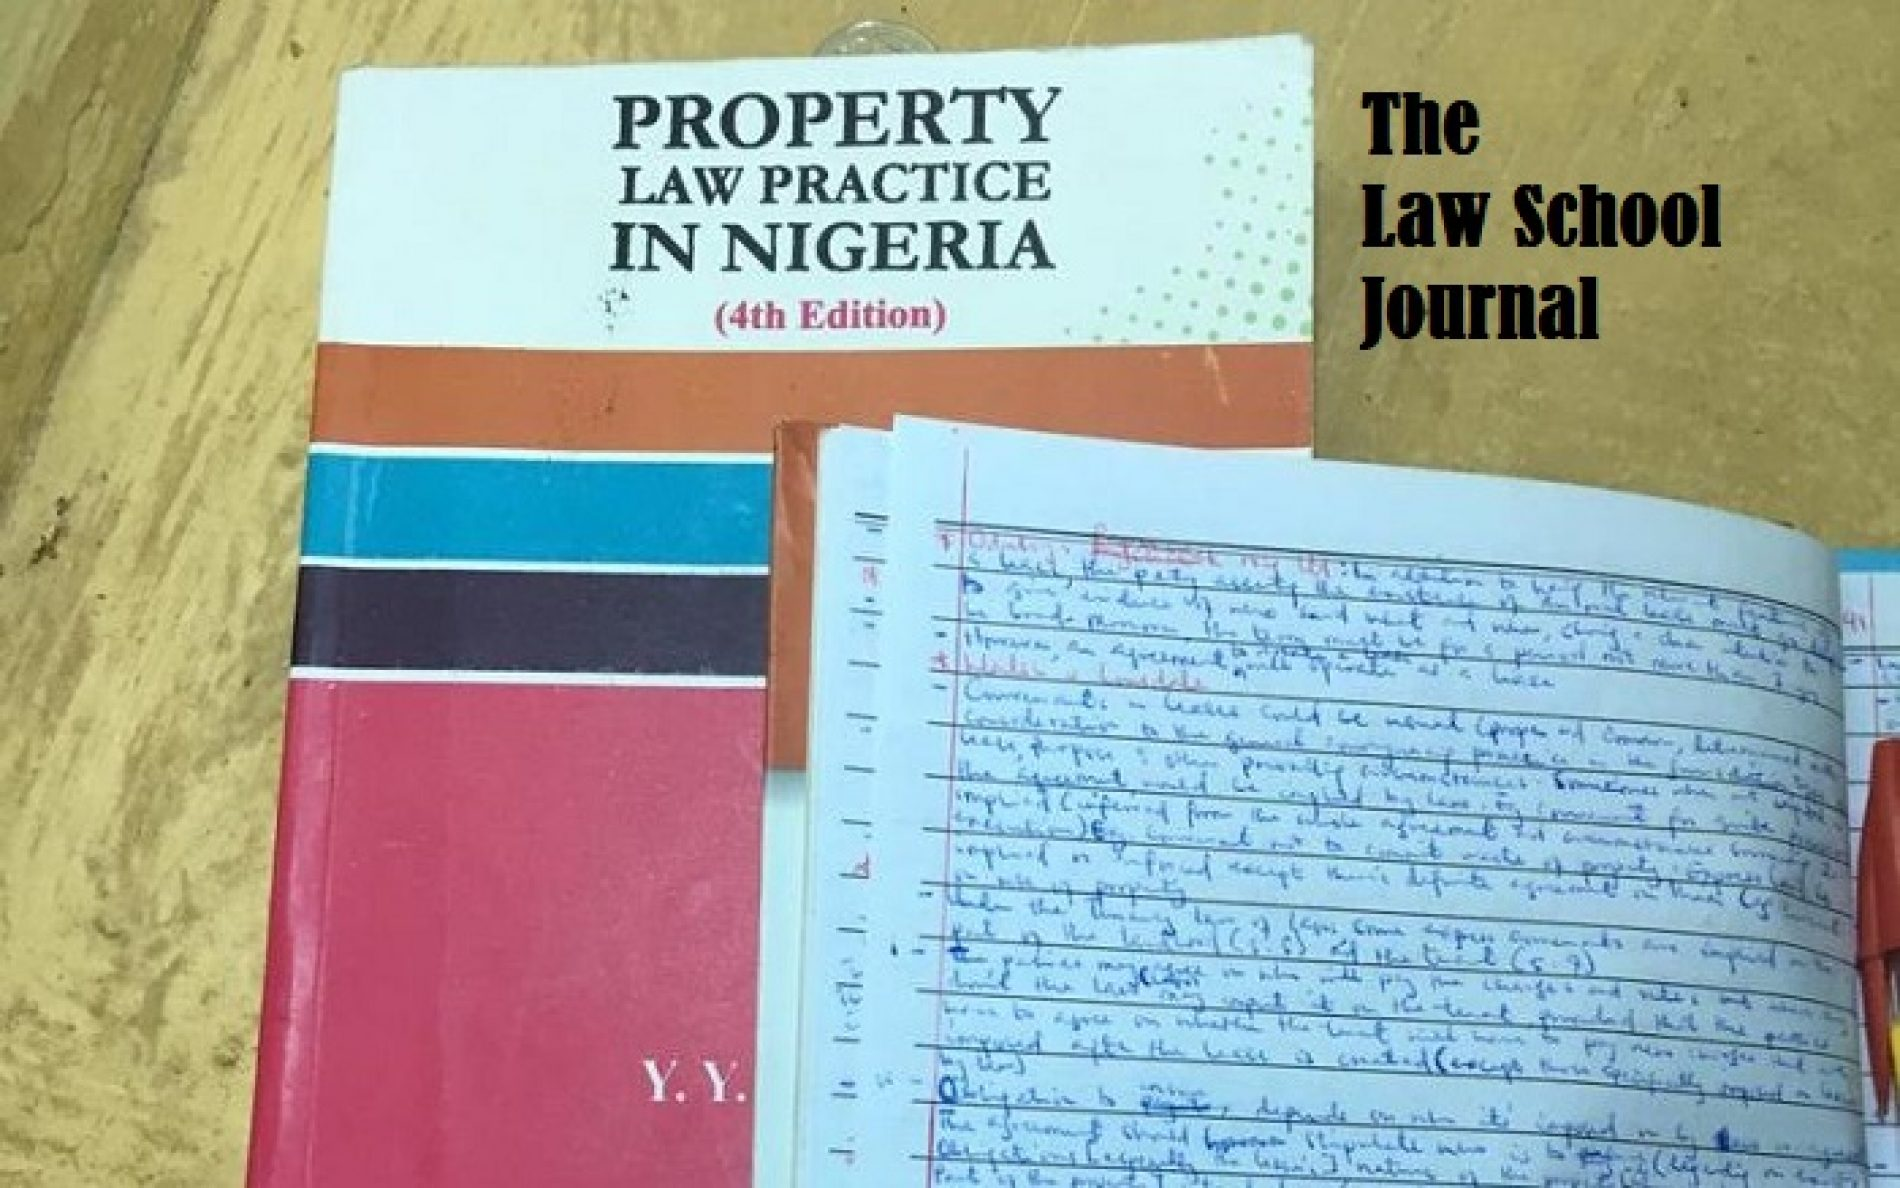 The Law School Journal (Entry 3)